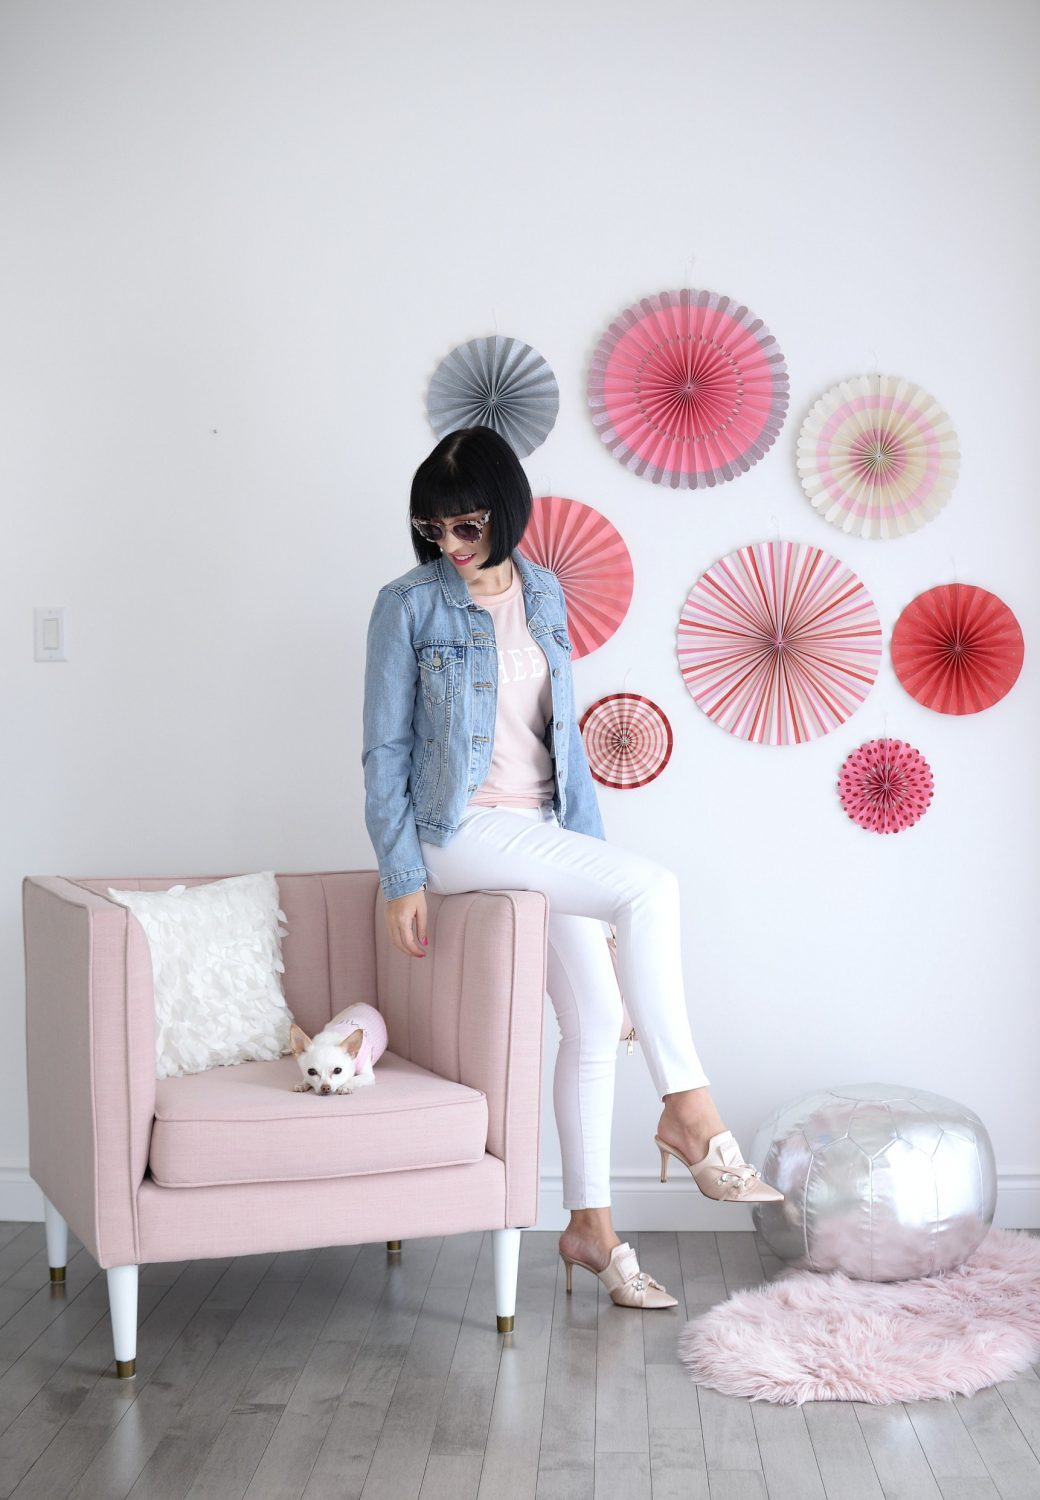 Pets + Fashion | The Pink Millennial